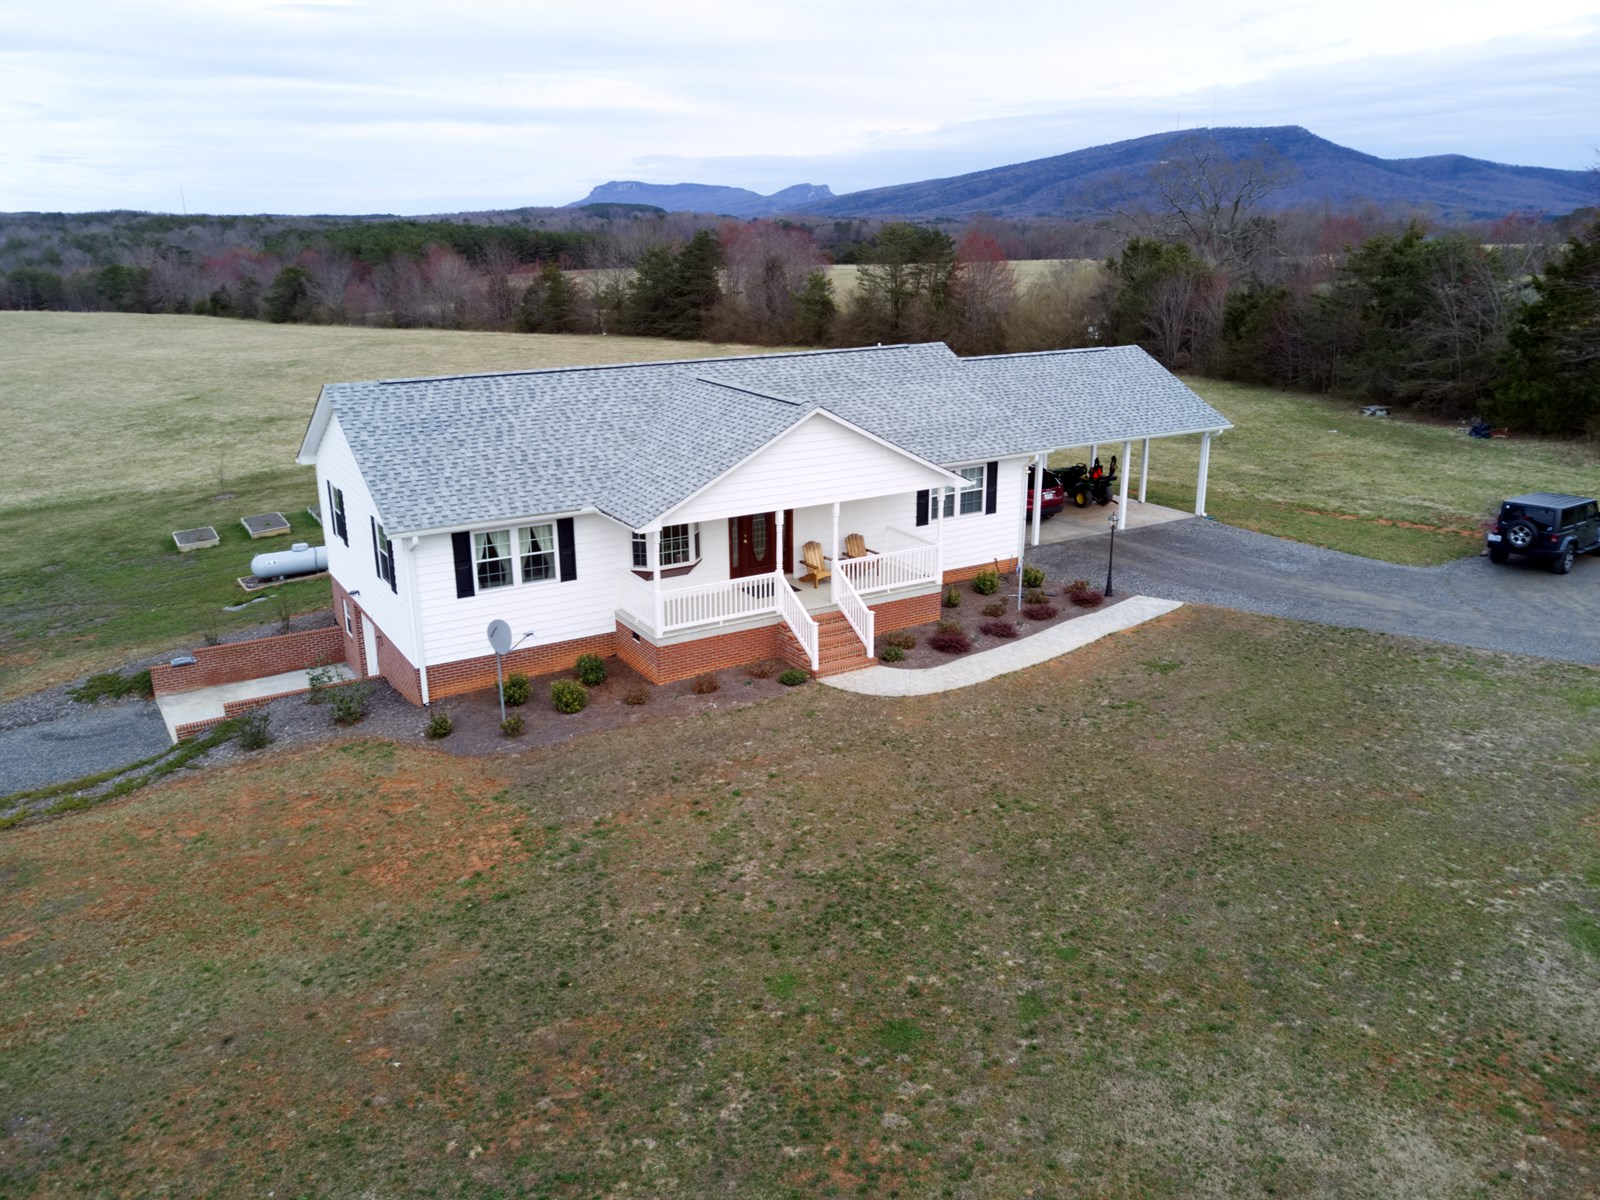 Home for sale in Pilot Mountain NC